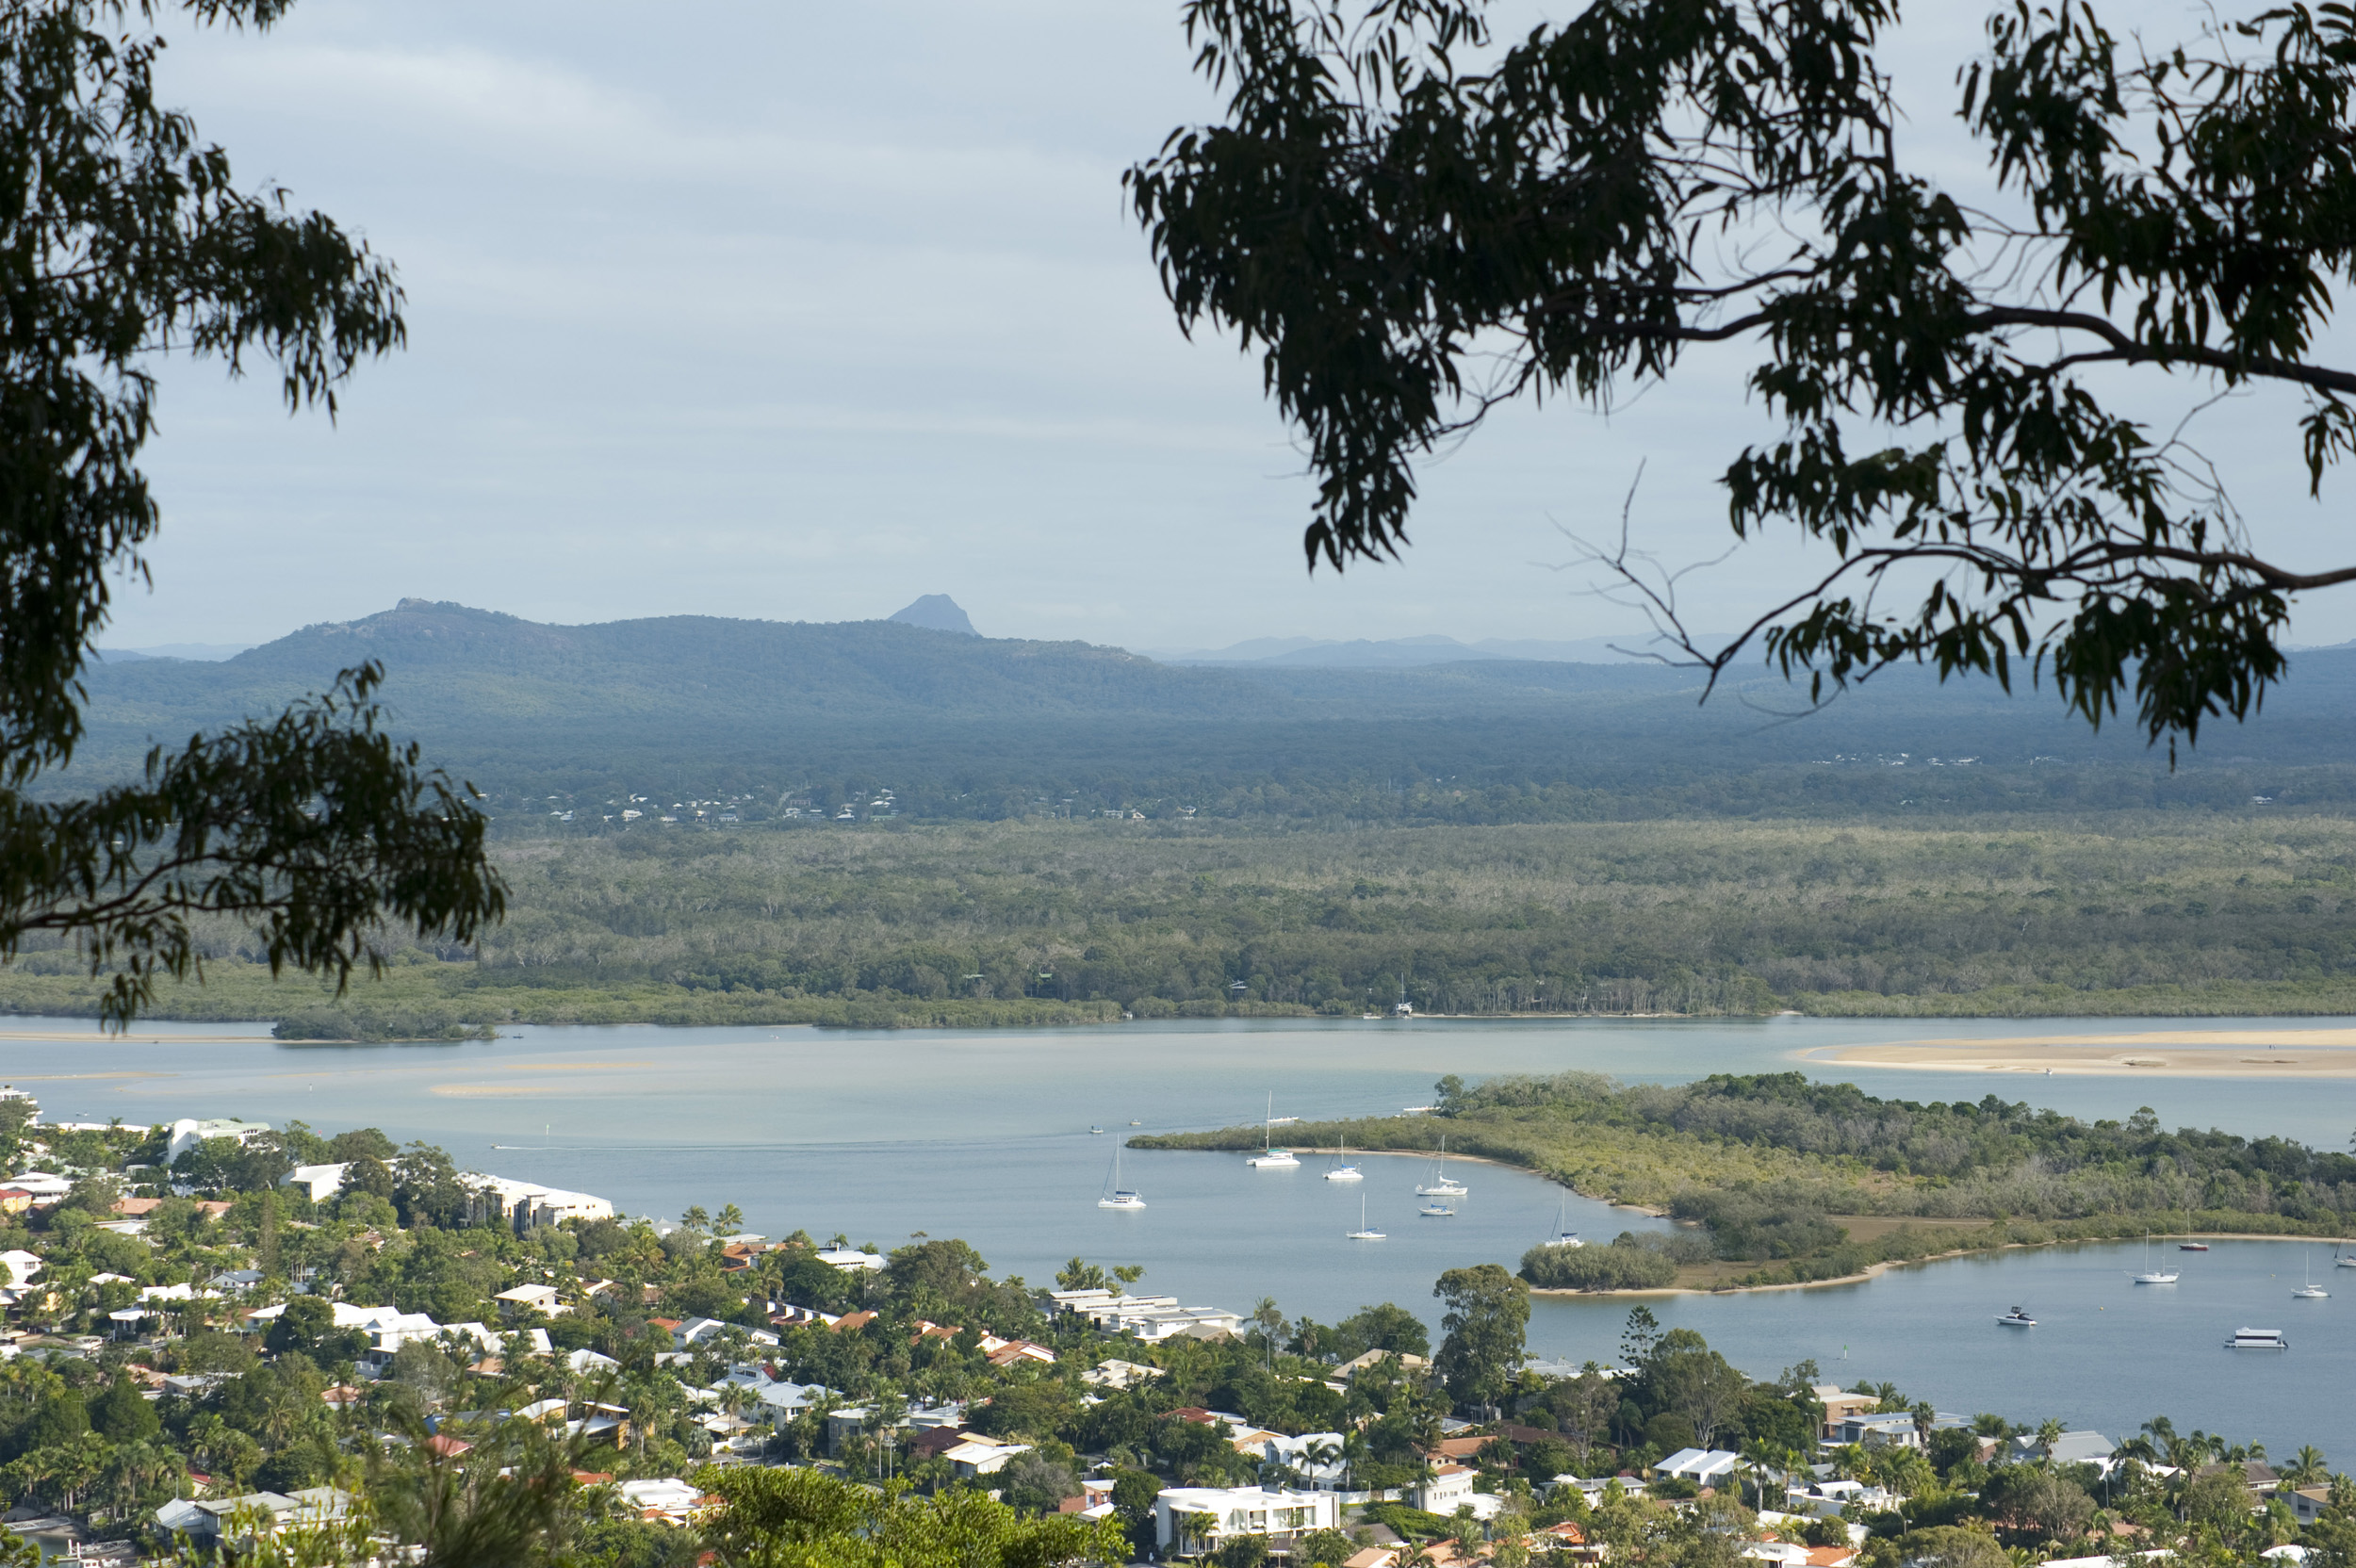 Landscape view of the Noosa hinterland looking across part of the town and the Noosa River estuary to a distant mountain range